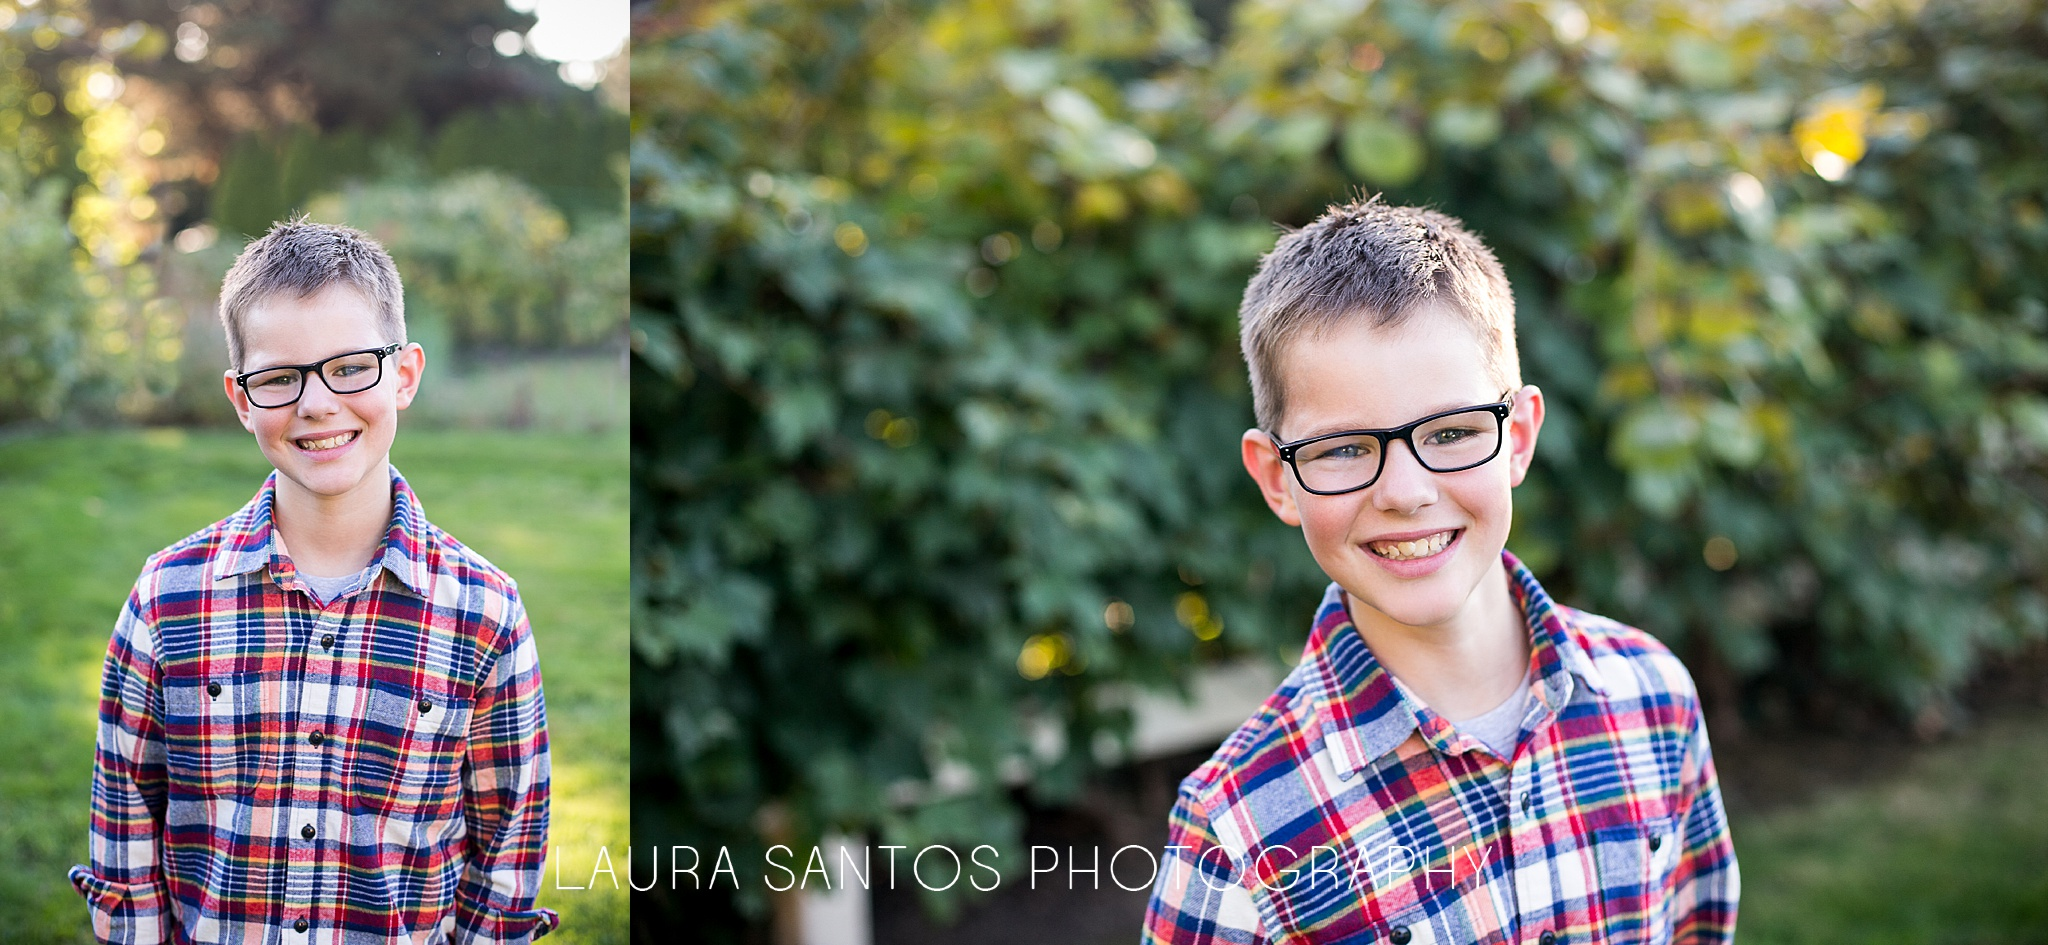 Laura Santos Photography Portland Oregon Family Photographer_0712.jpg